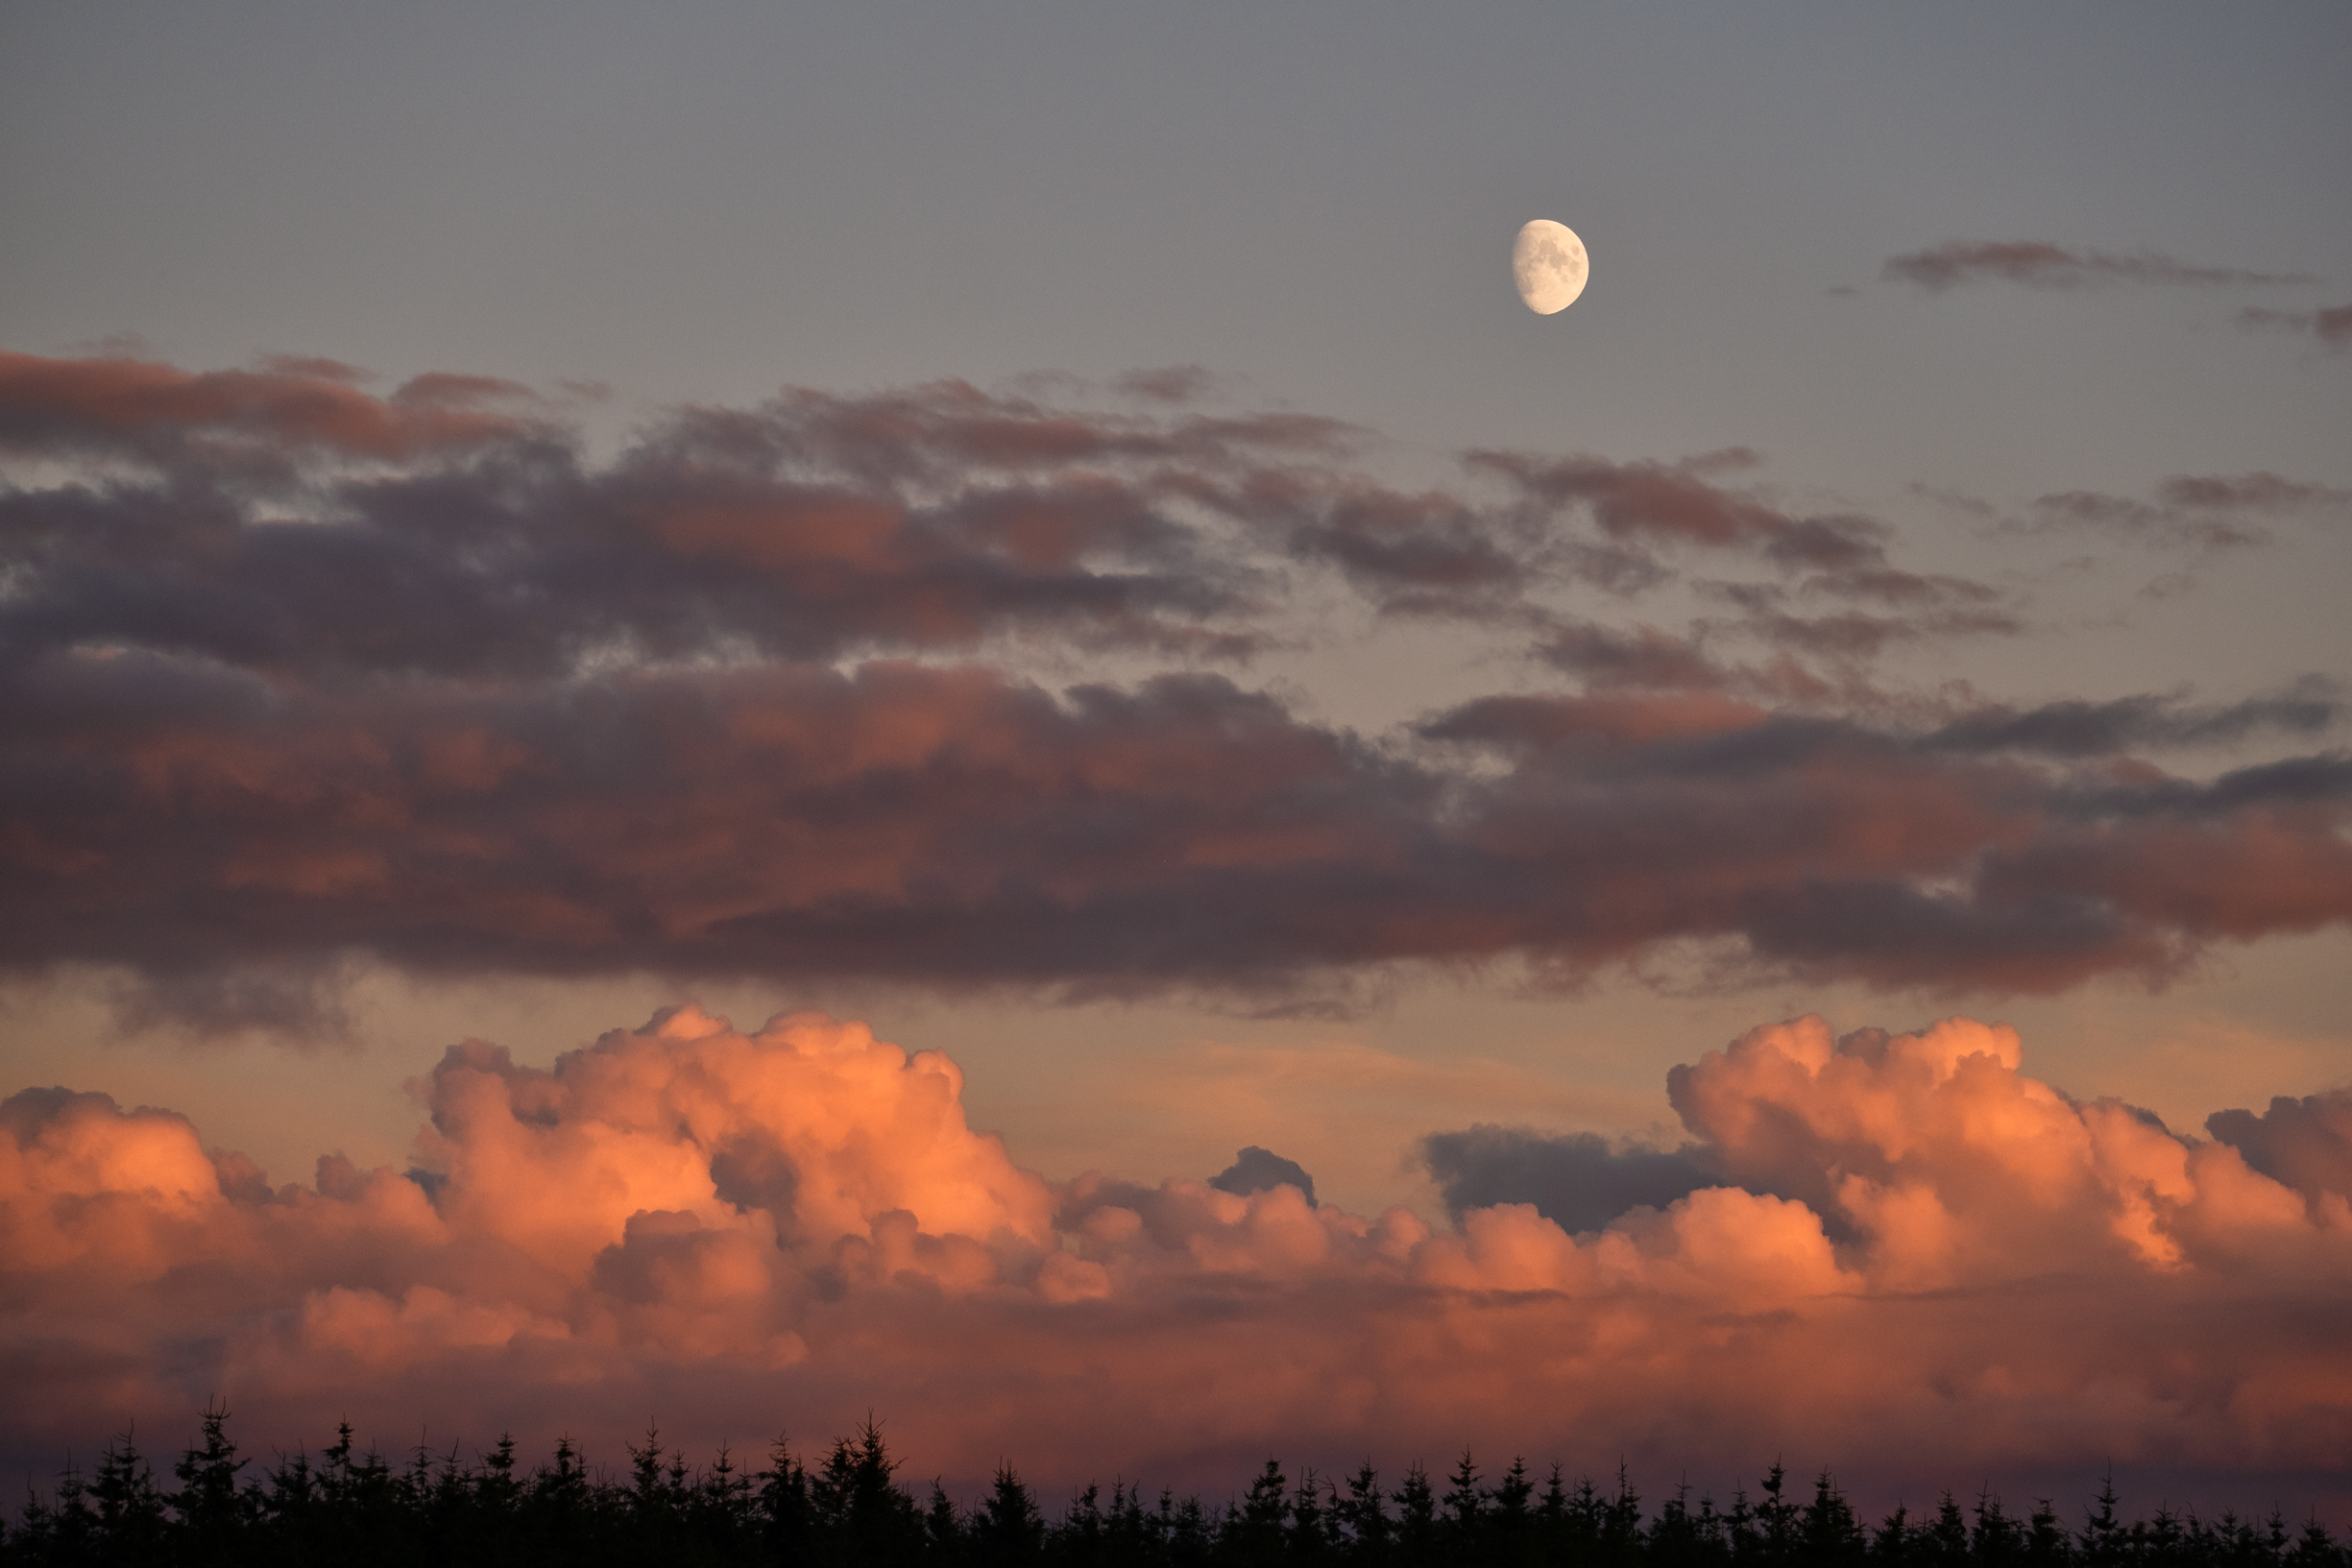 Moon, skies and clouds